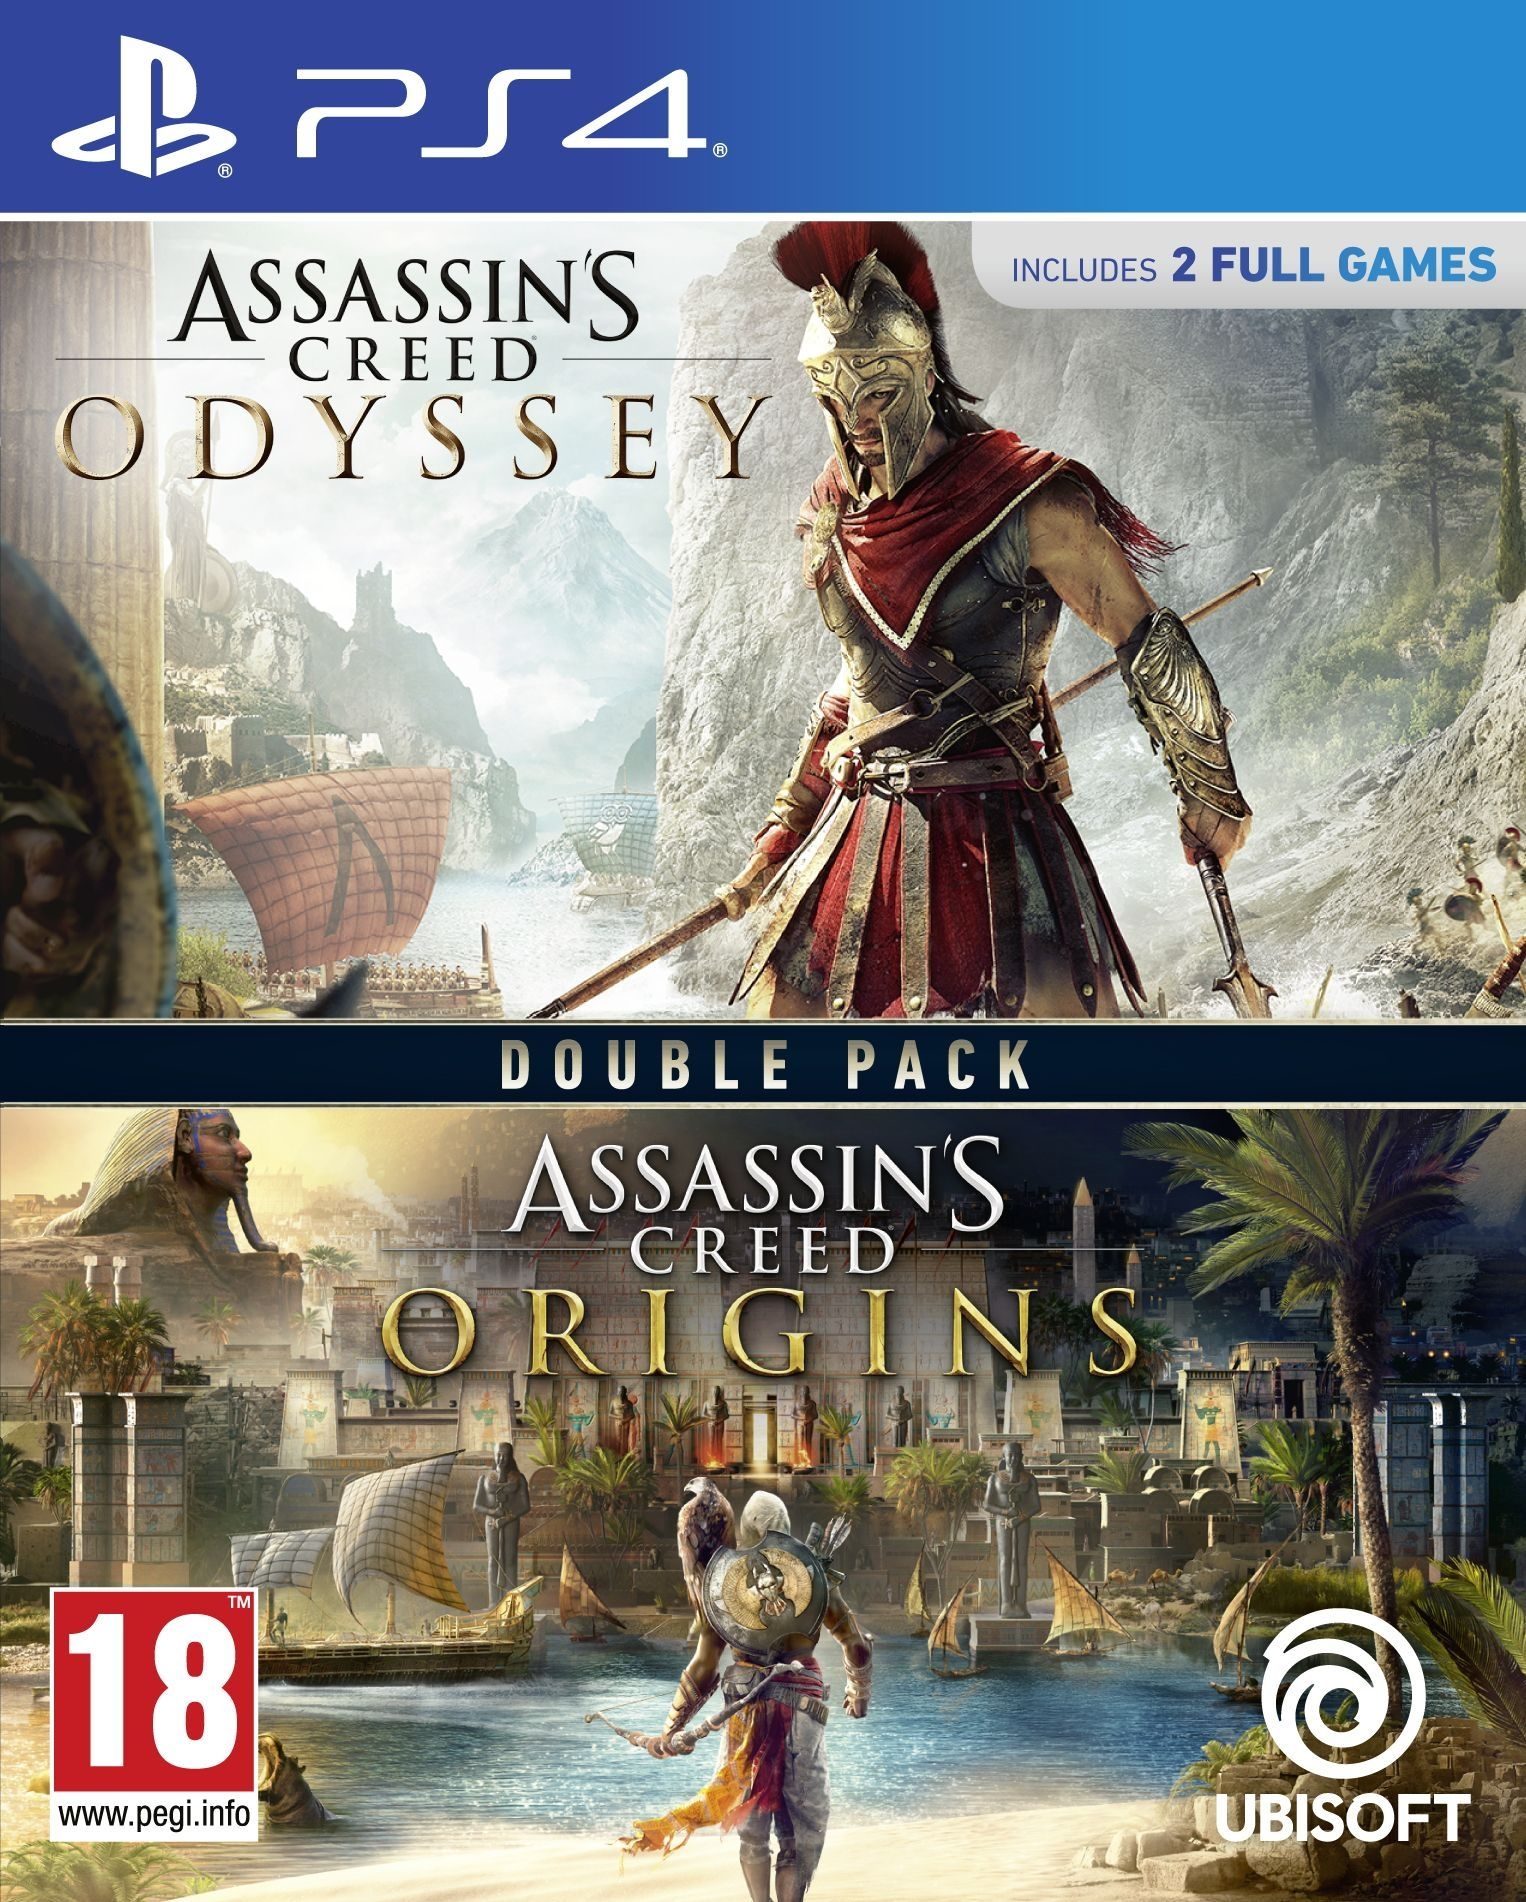 Assassin's Creed Odyssey + Assassin's Creed Origins (PS4) - 1